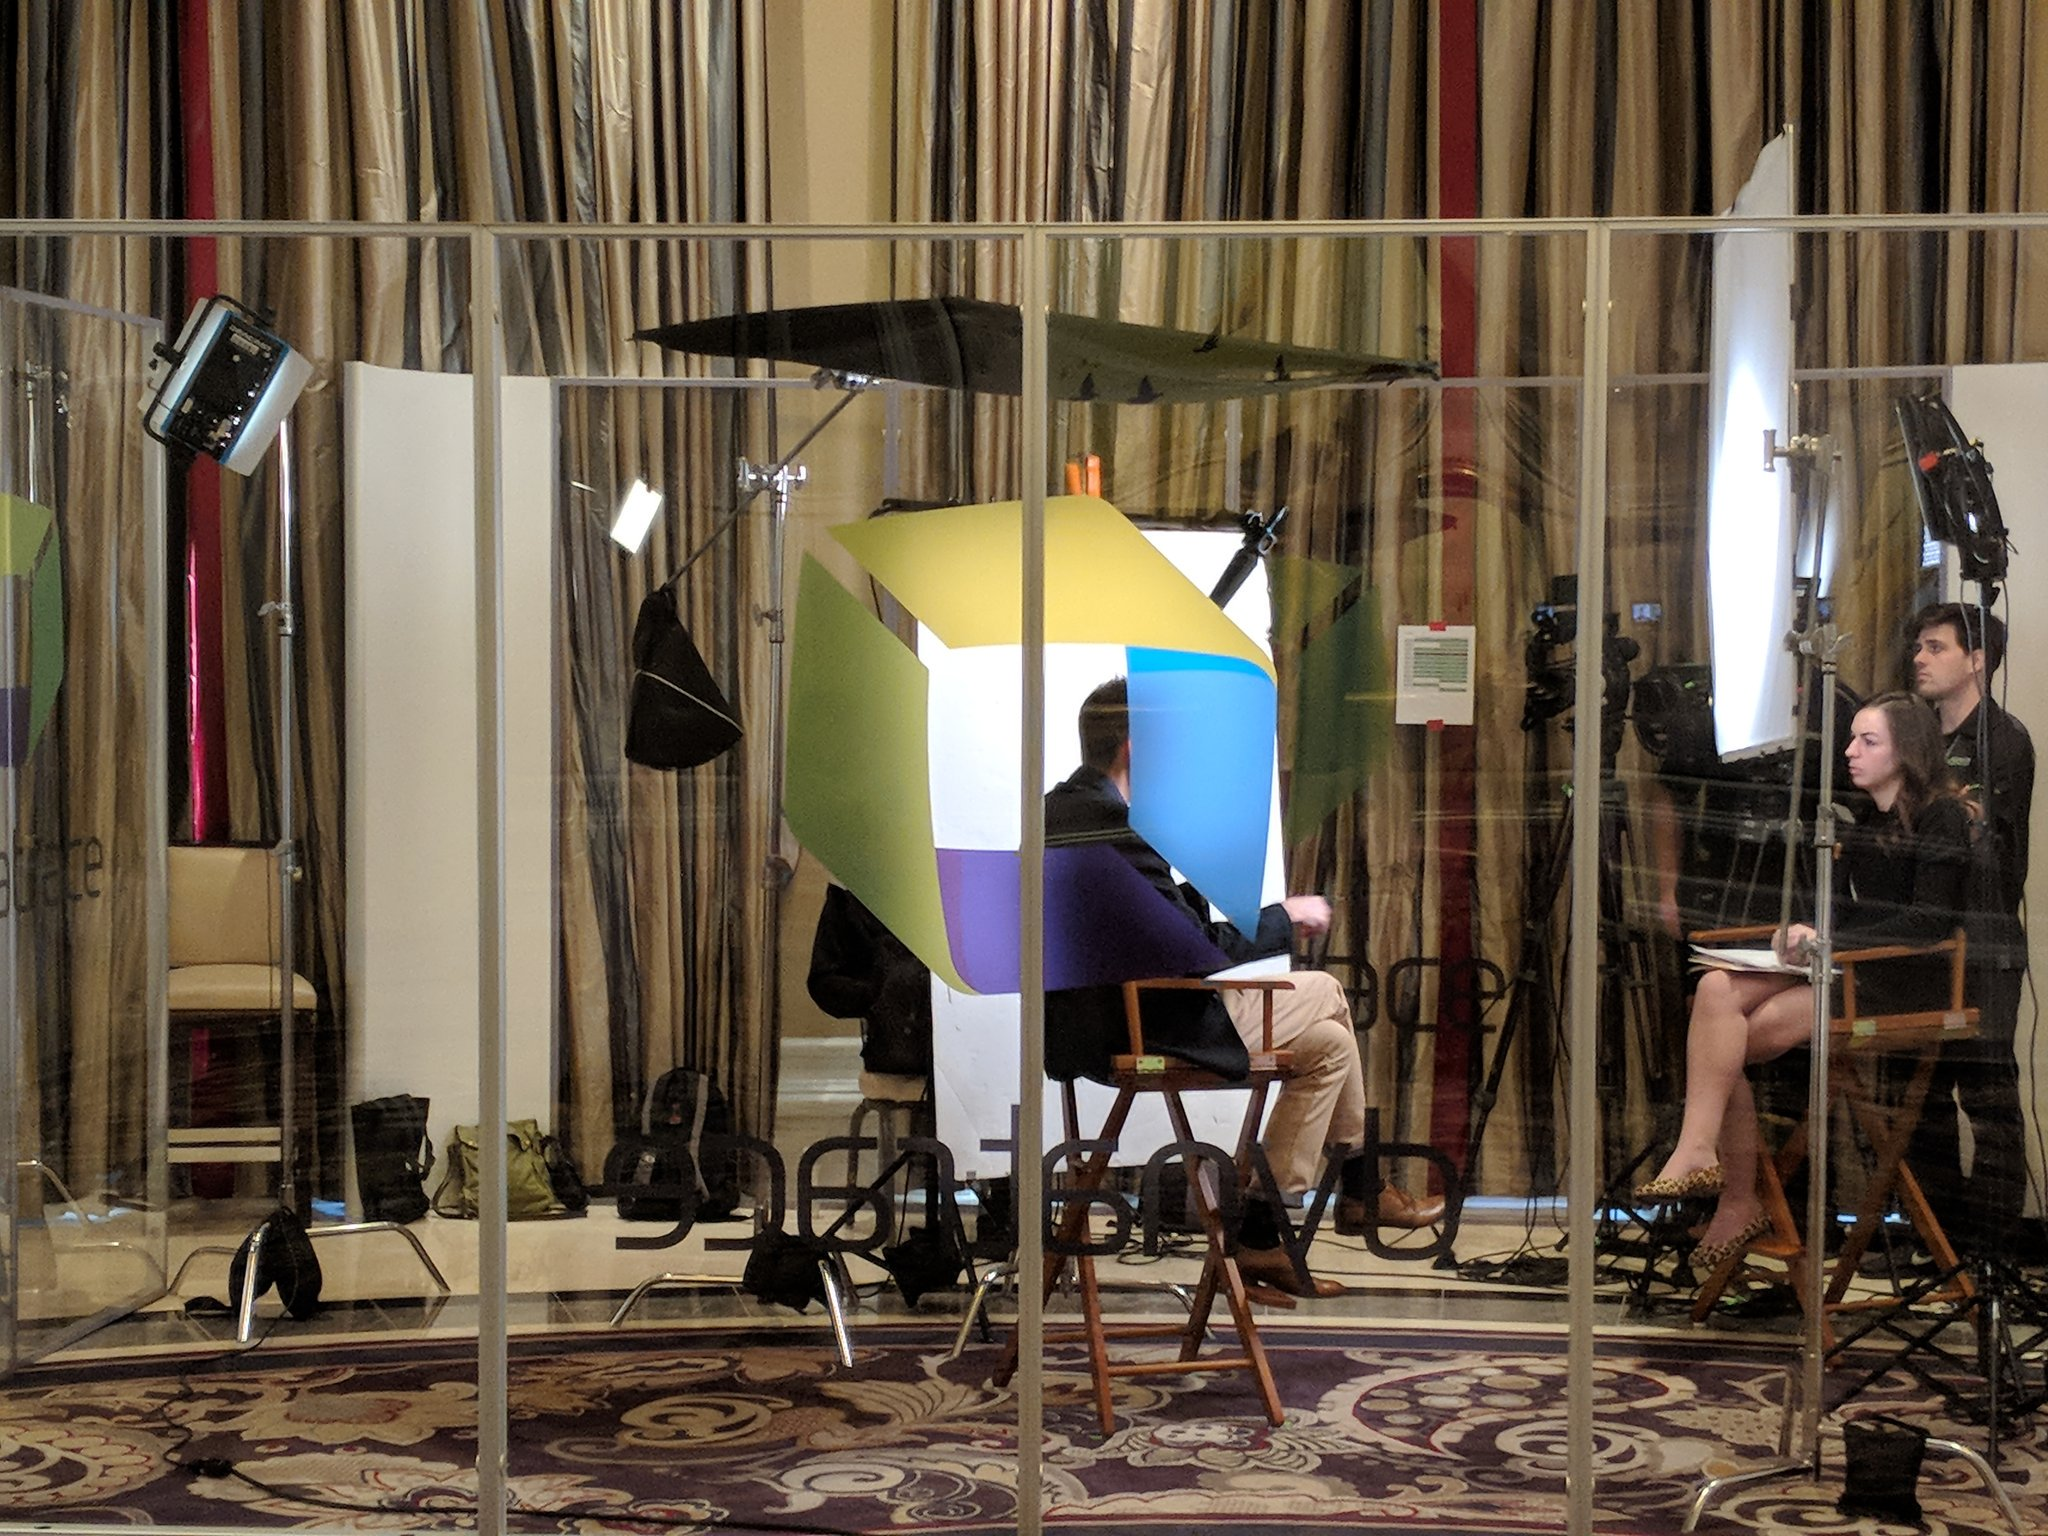 Interview booth in the lounge